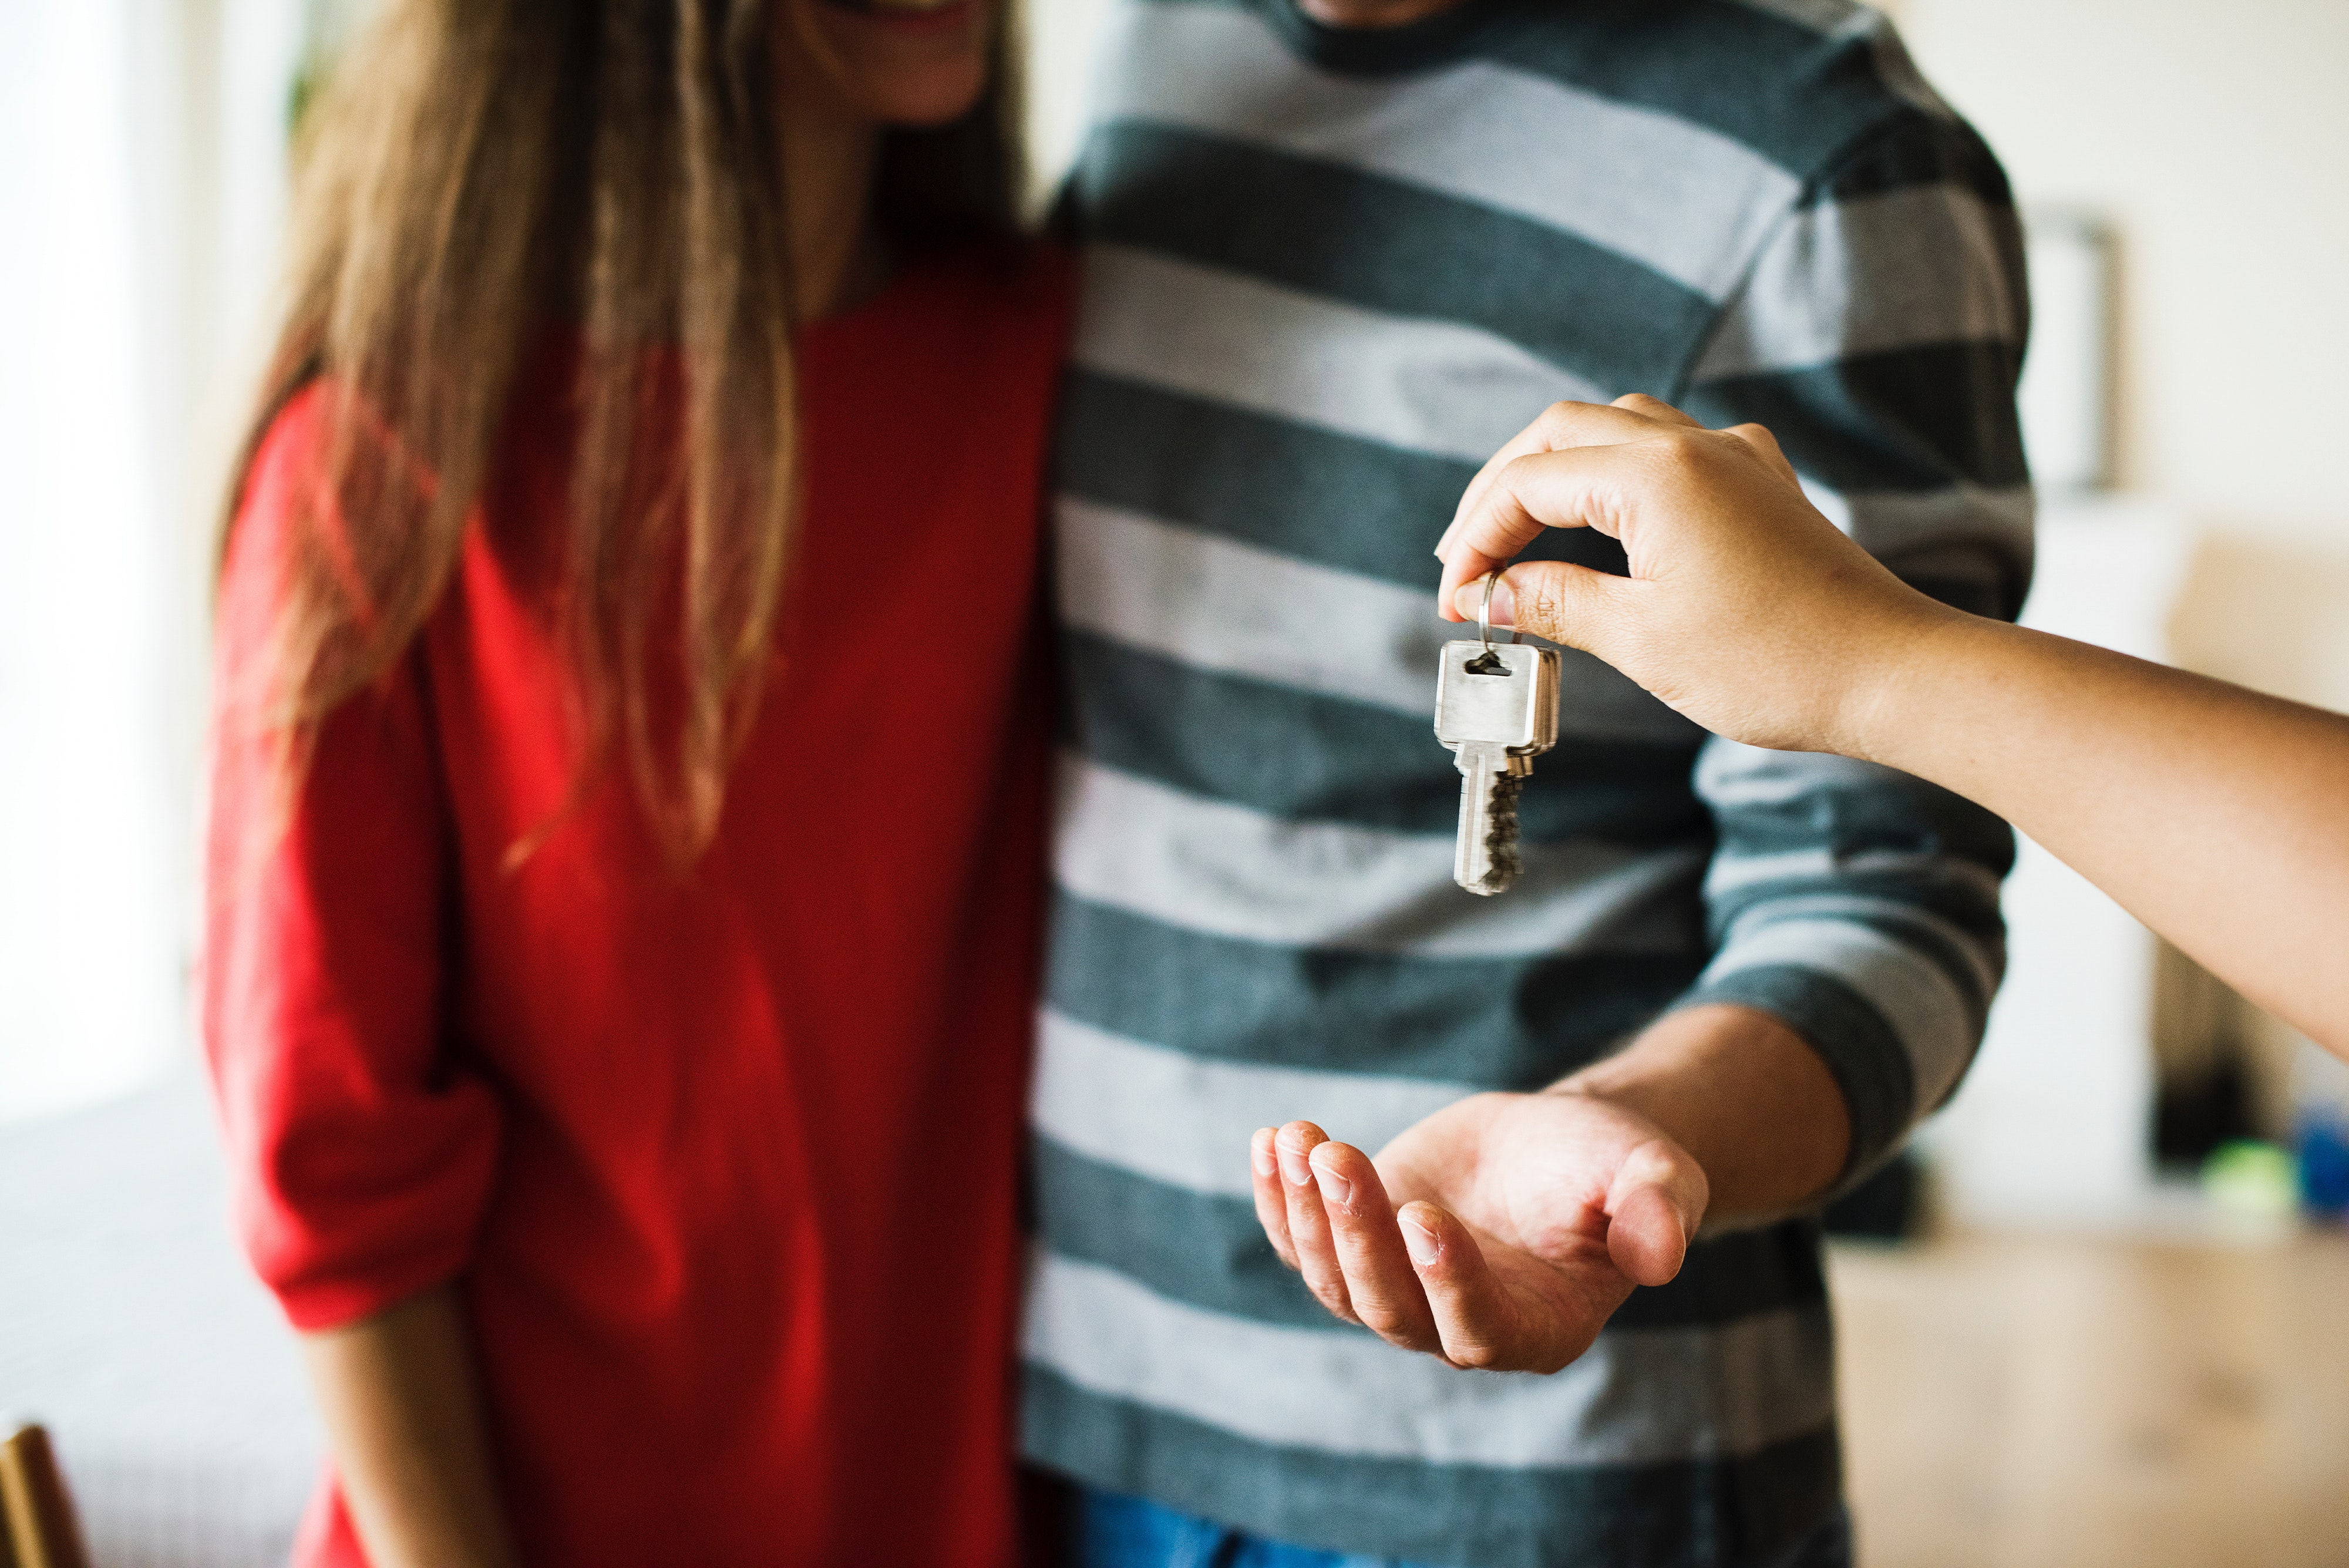 An in-depth review of the best Gifts for New Homeowners available in 2018.